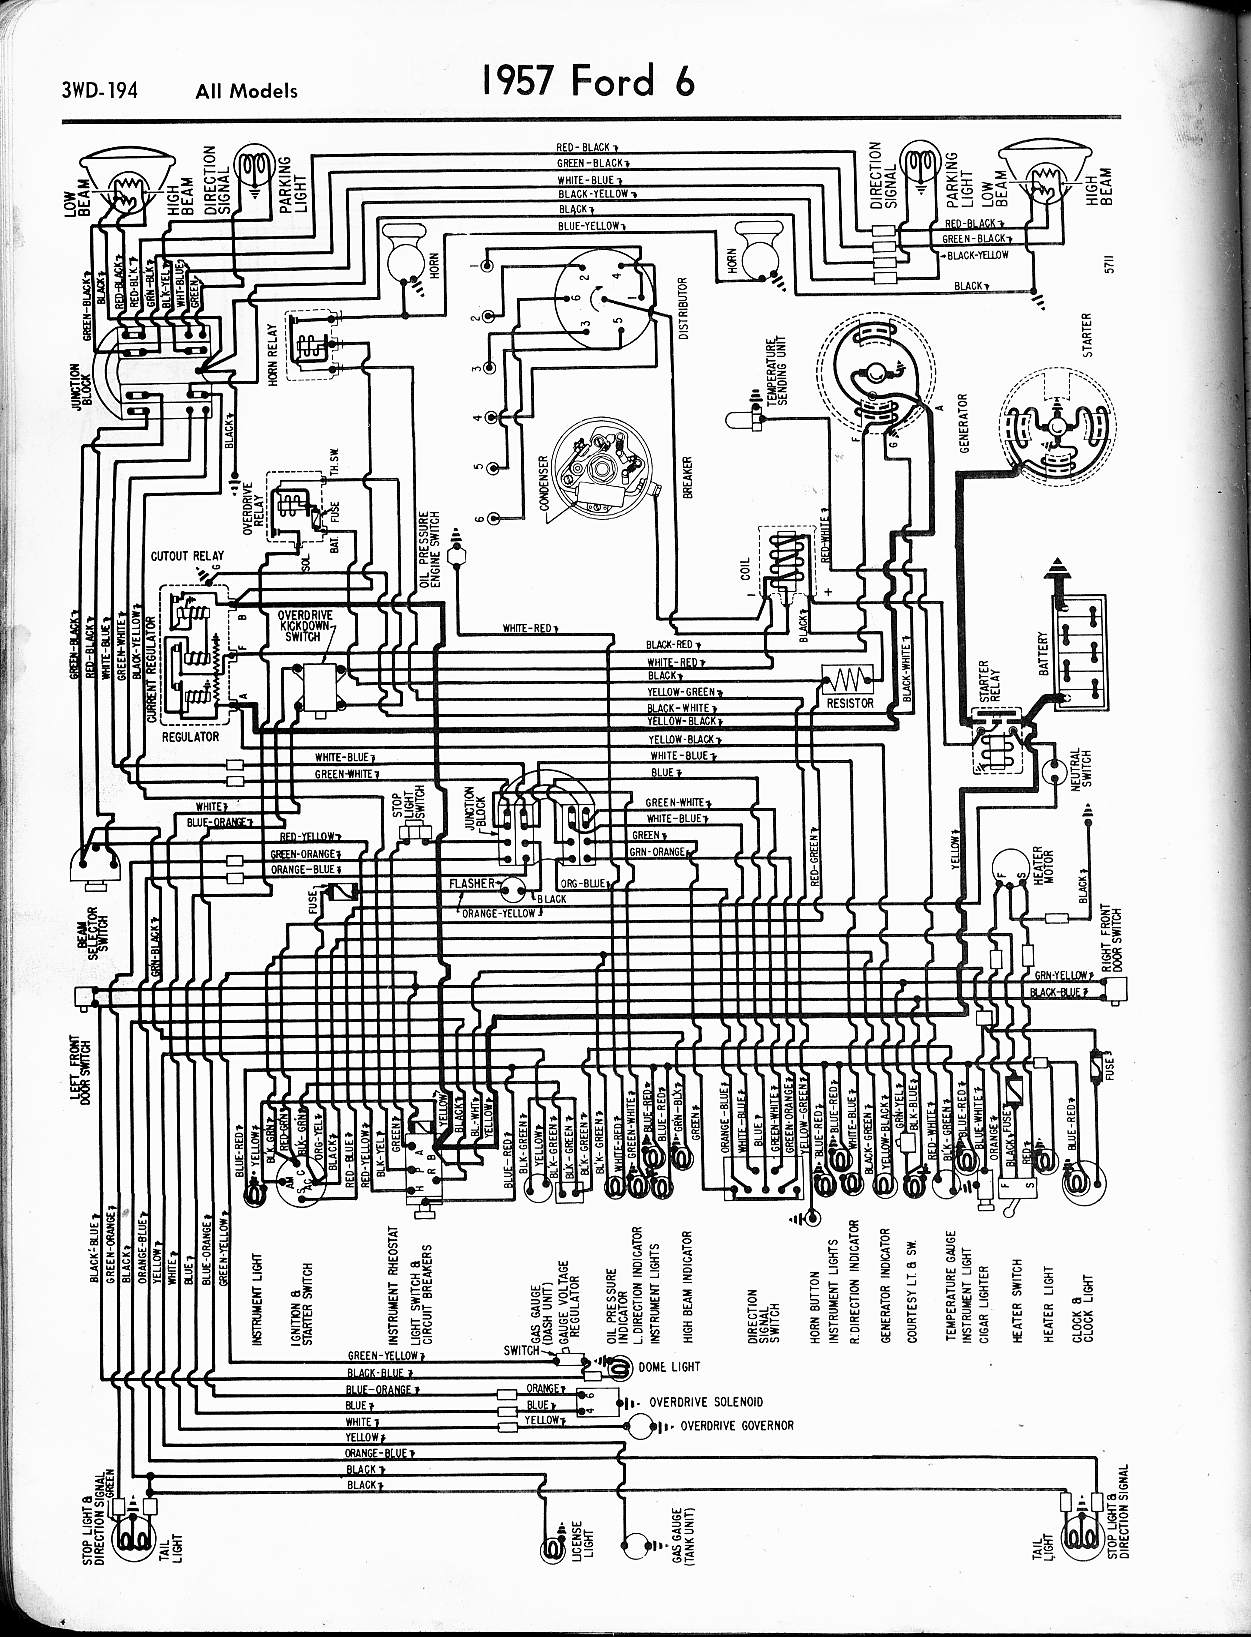 1998 mcneilus wiring diagram wiring library